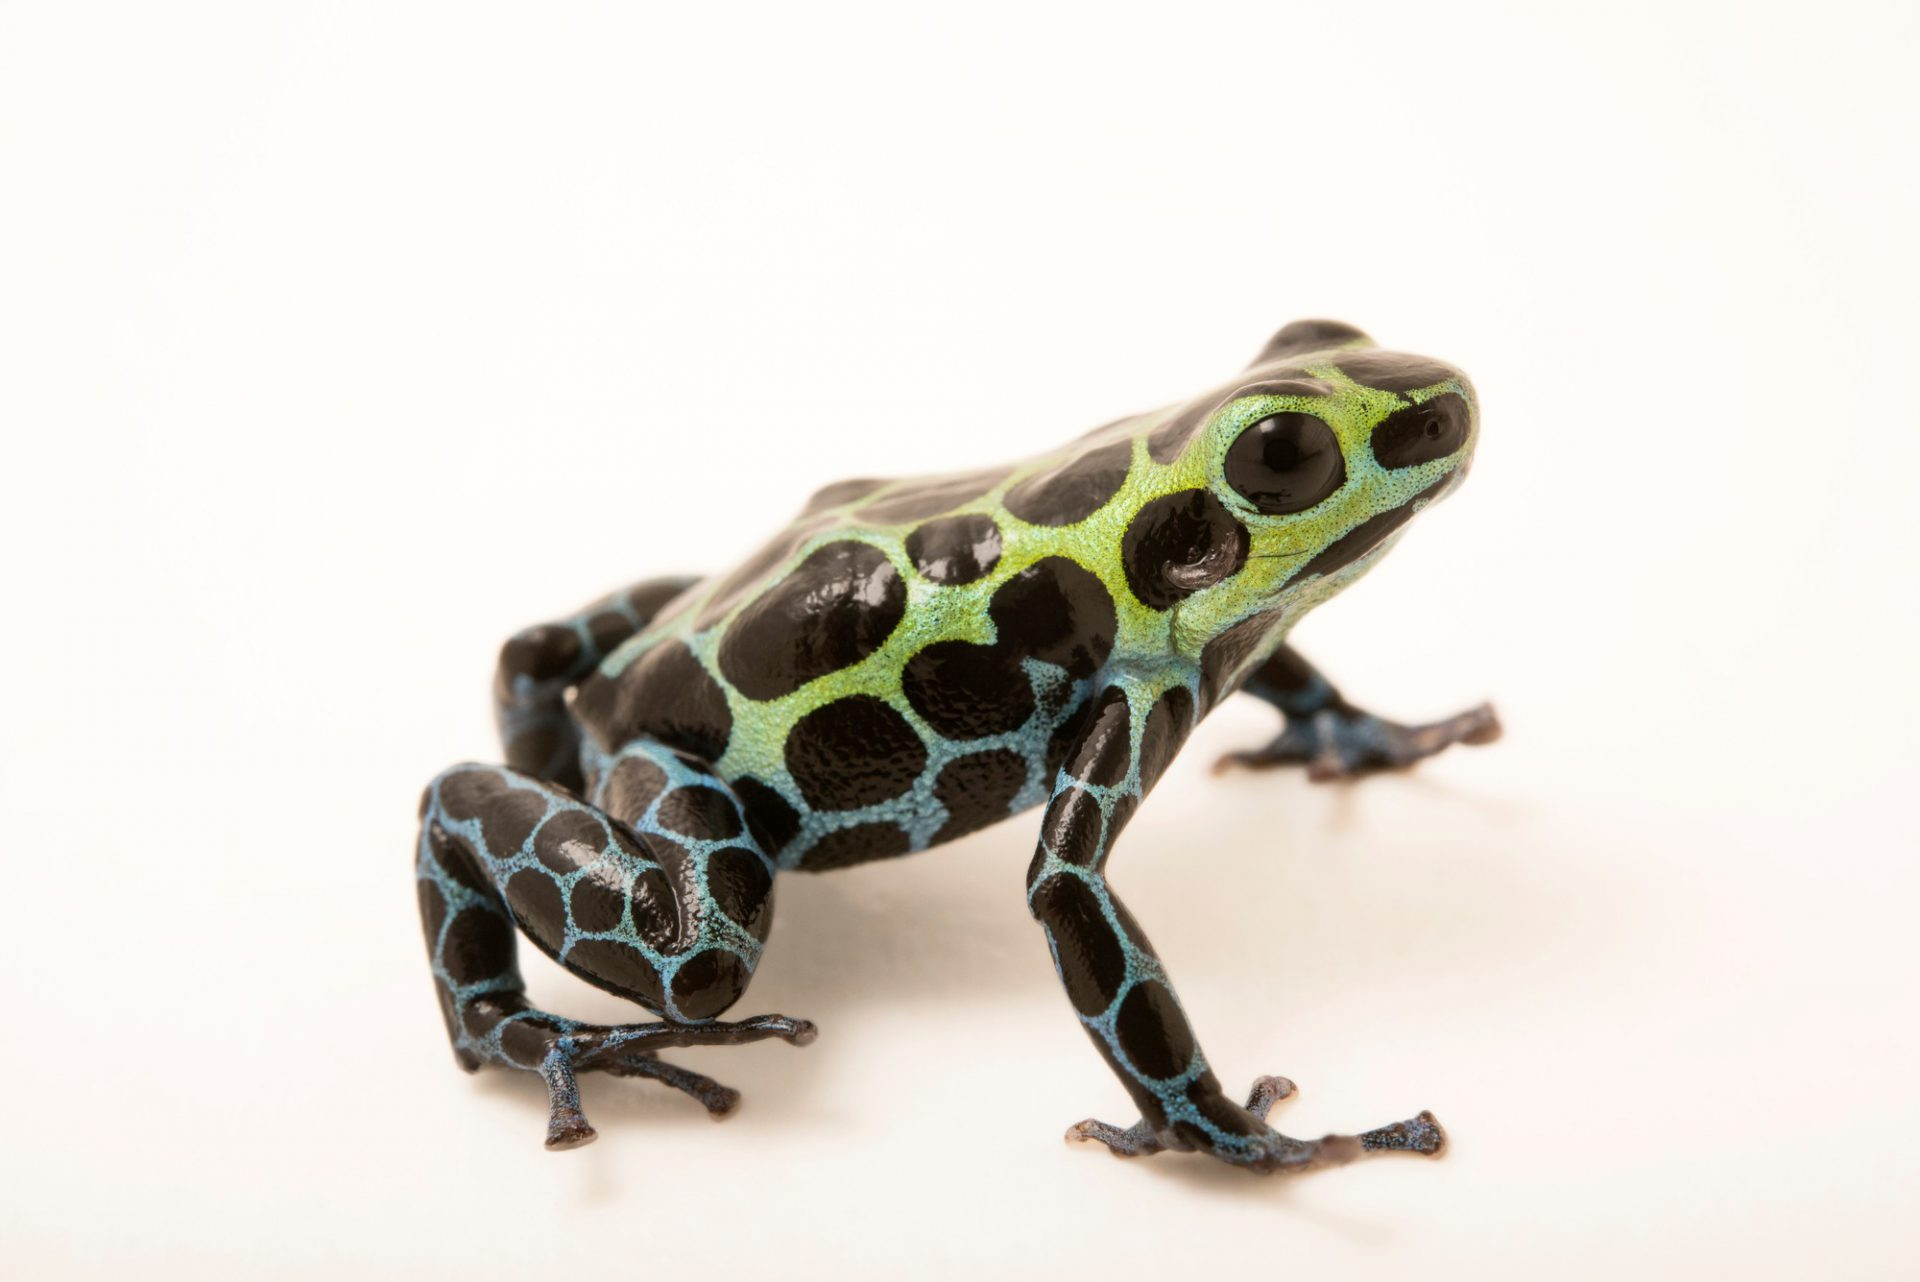 Photo: Splash-back poison frog (Ranitomeya variabilis) at the Houston Zoo.